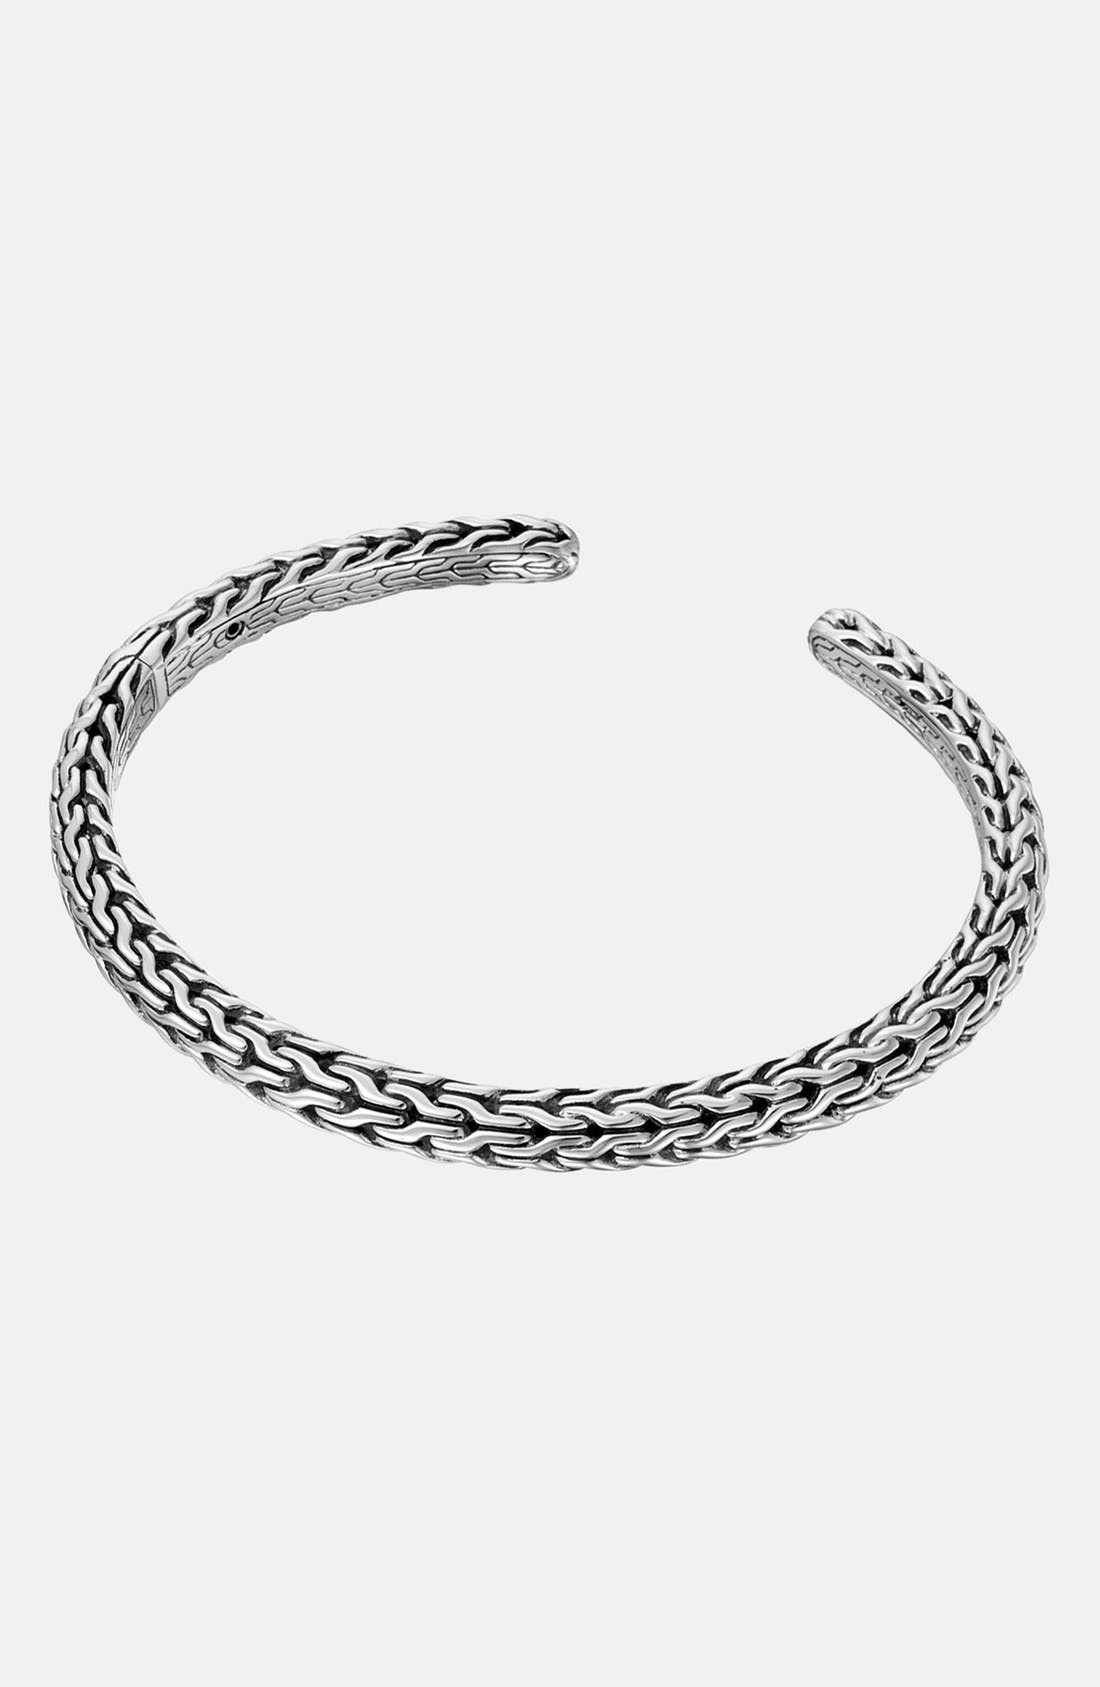 Alternate Image 1 Selected - John Hardy 'Classic Chain' Hinged Kick Cuff